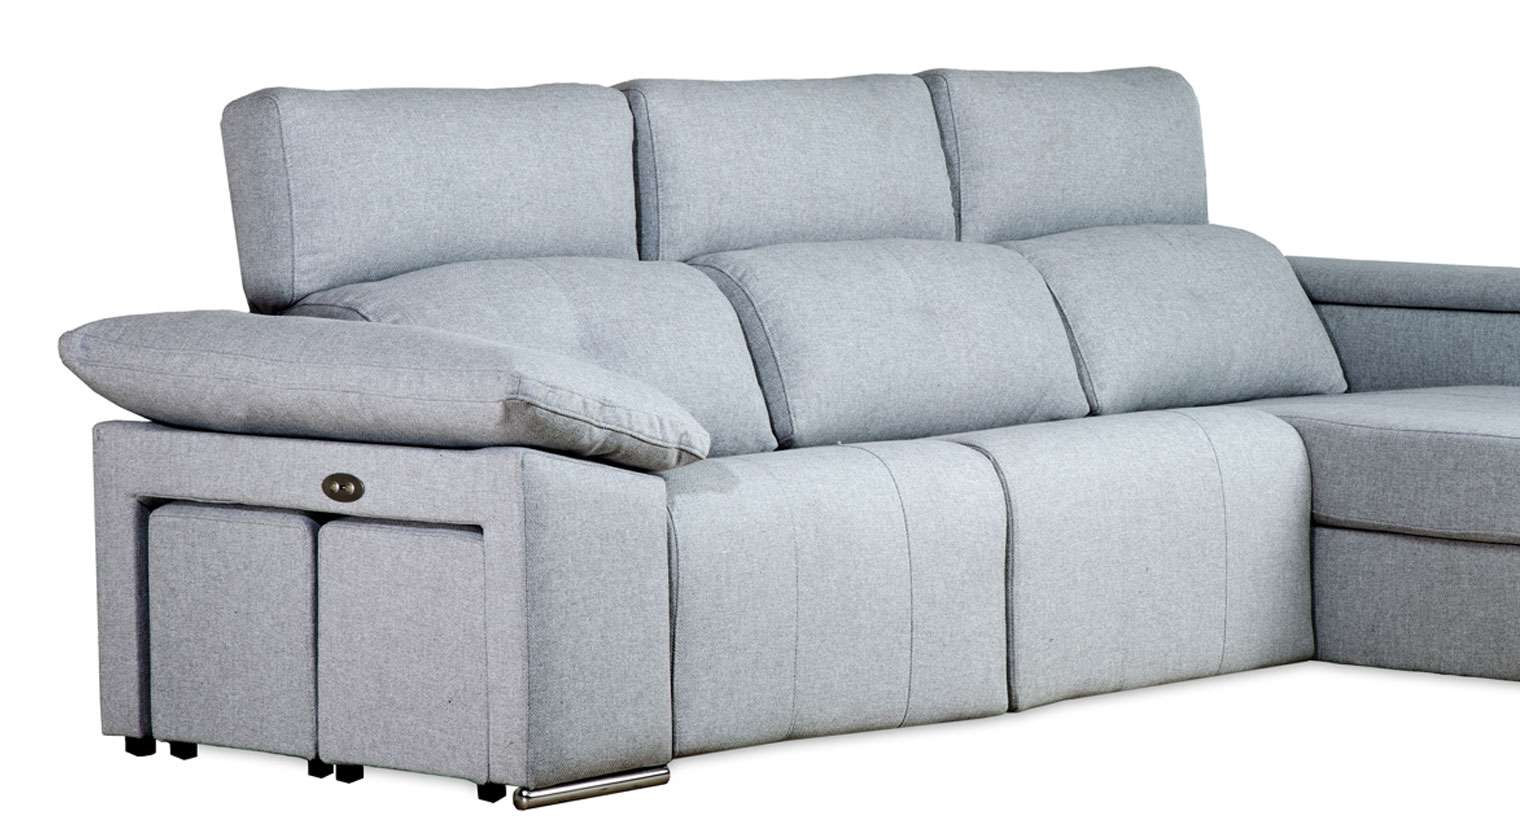 Imagen-Chaise-Longue-Relax-CALIPSO-3